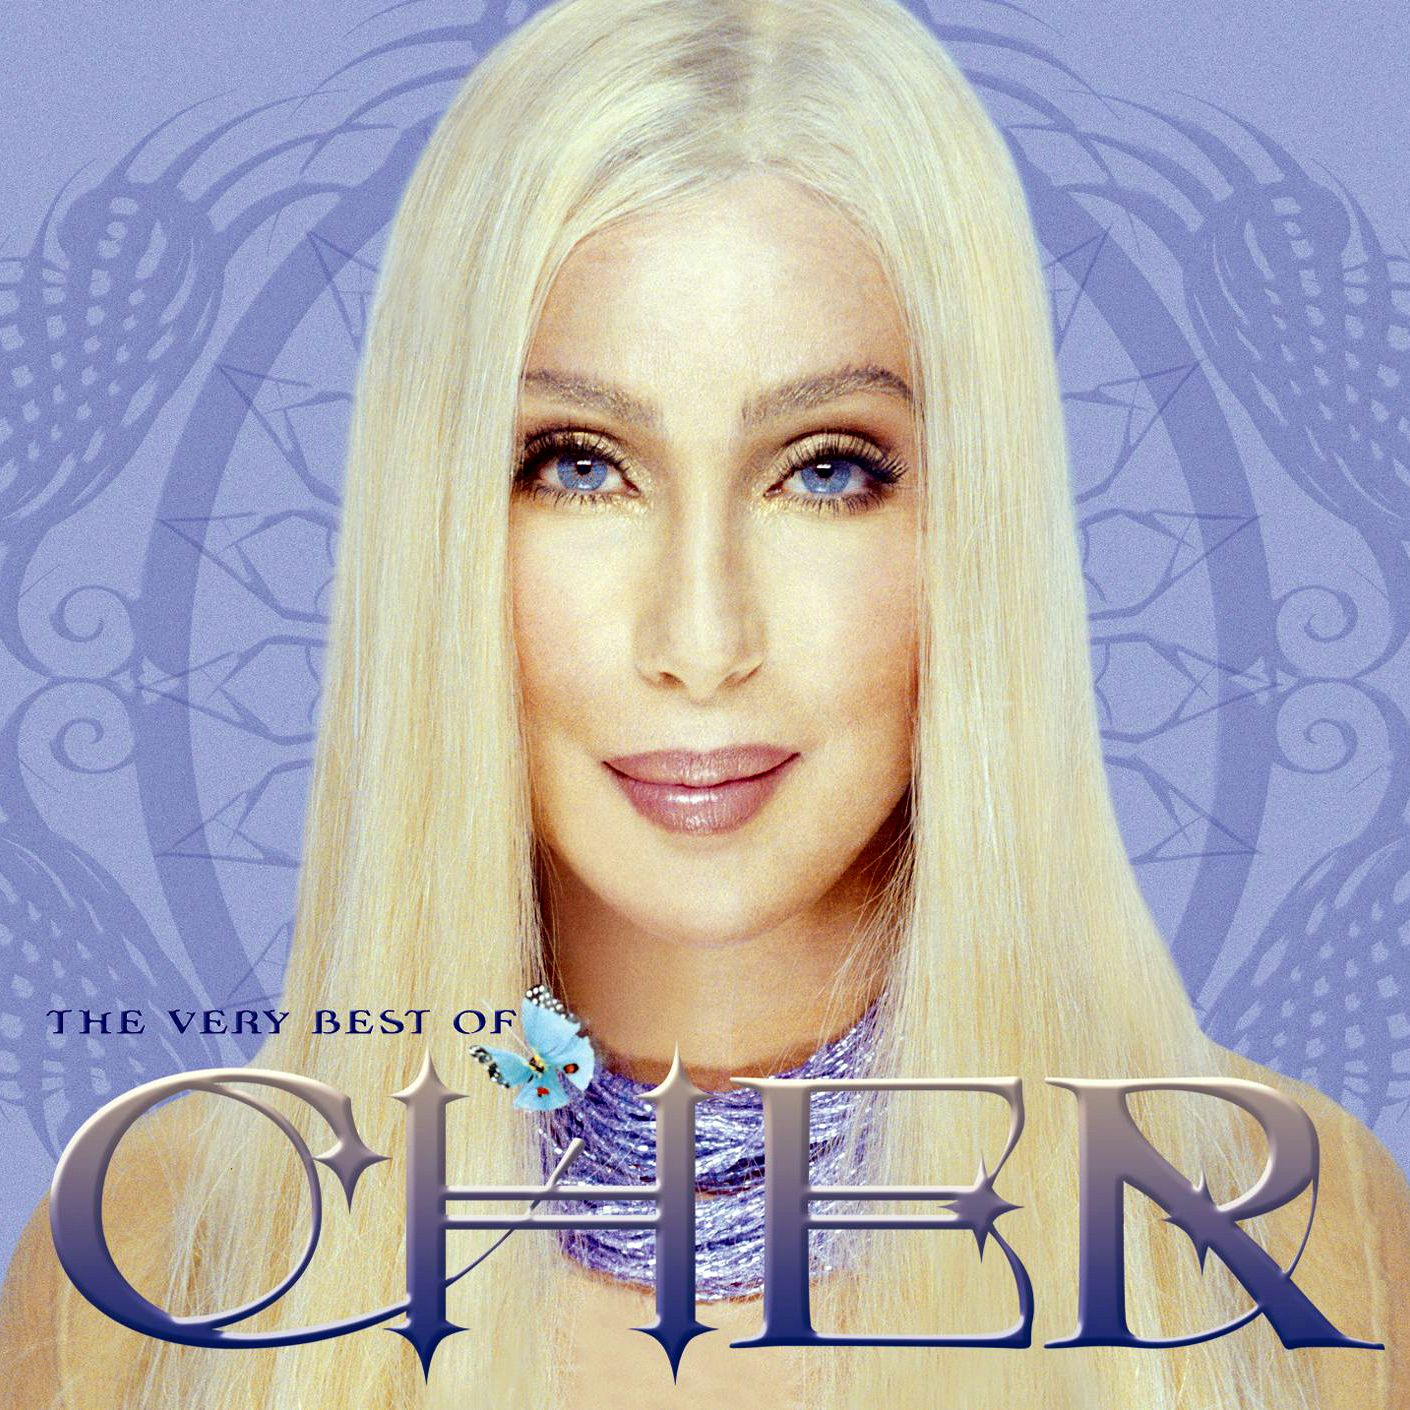 Cher - The Very Best Of Cher album cover